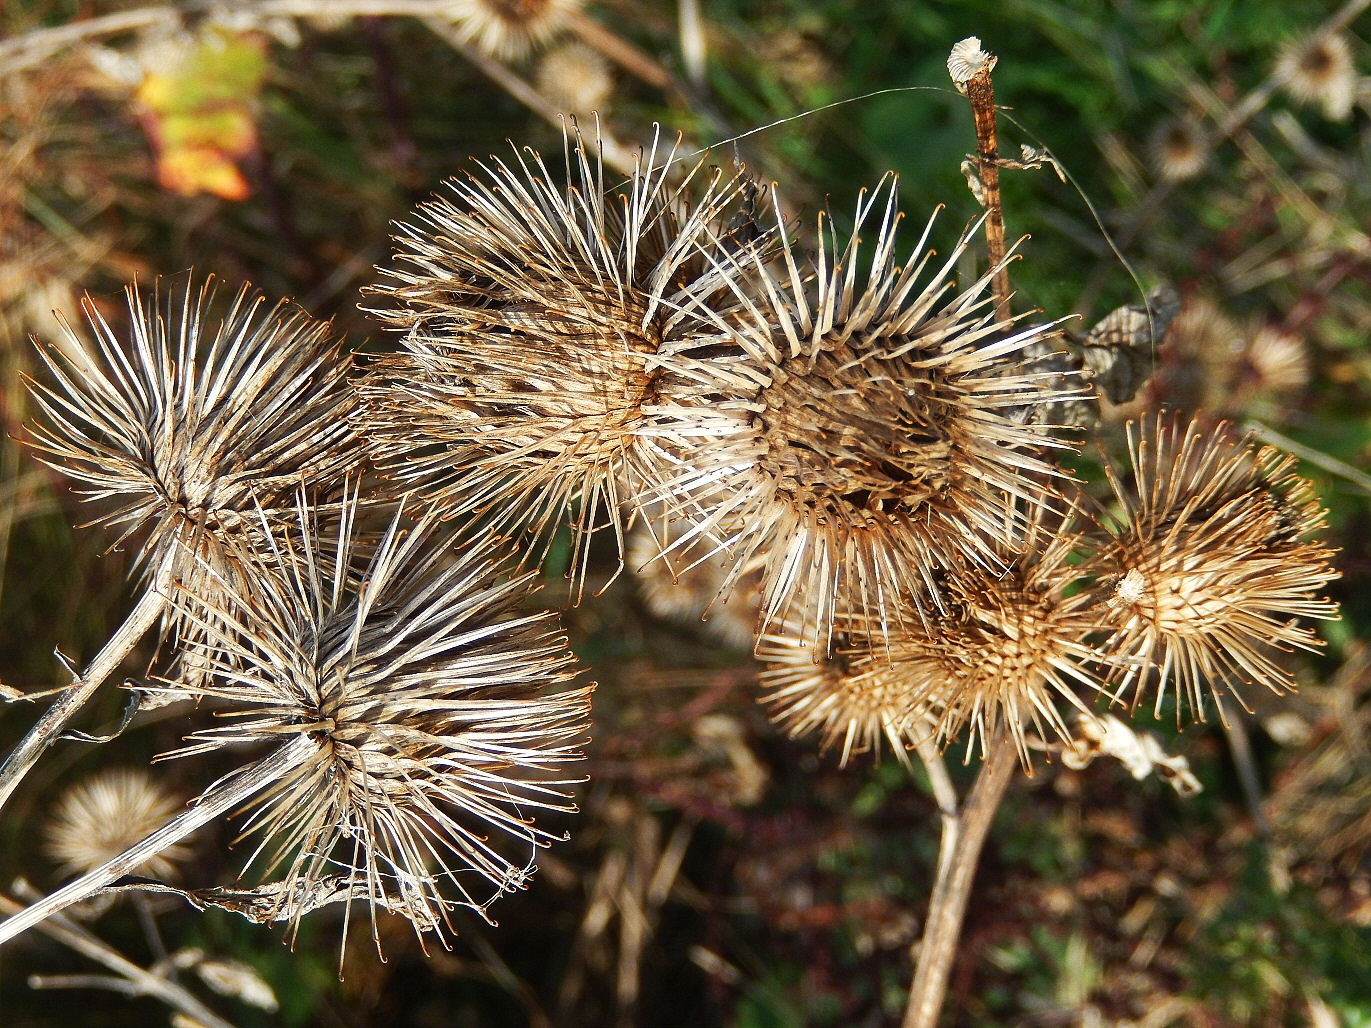 Hips, Haws, And Burrs: Yes, It's Autumn At Wraysbury Lakes